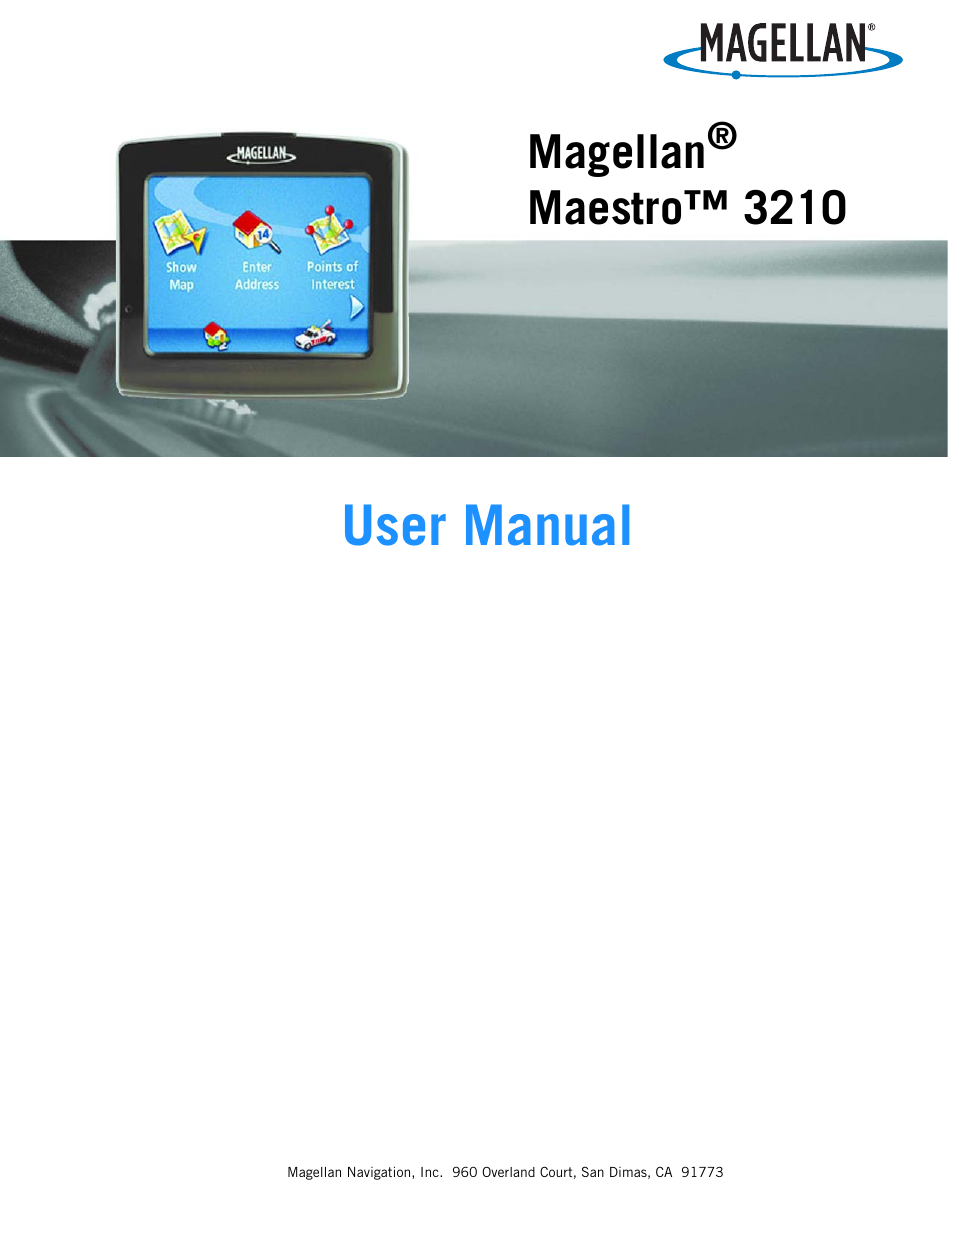 magellan maestro 3210 user manual 68 pages rh manualsdir com Magellan Maestro Not Turning On magellan maestro 3200 user manual